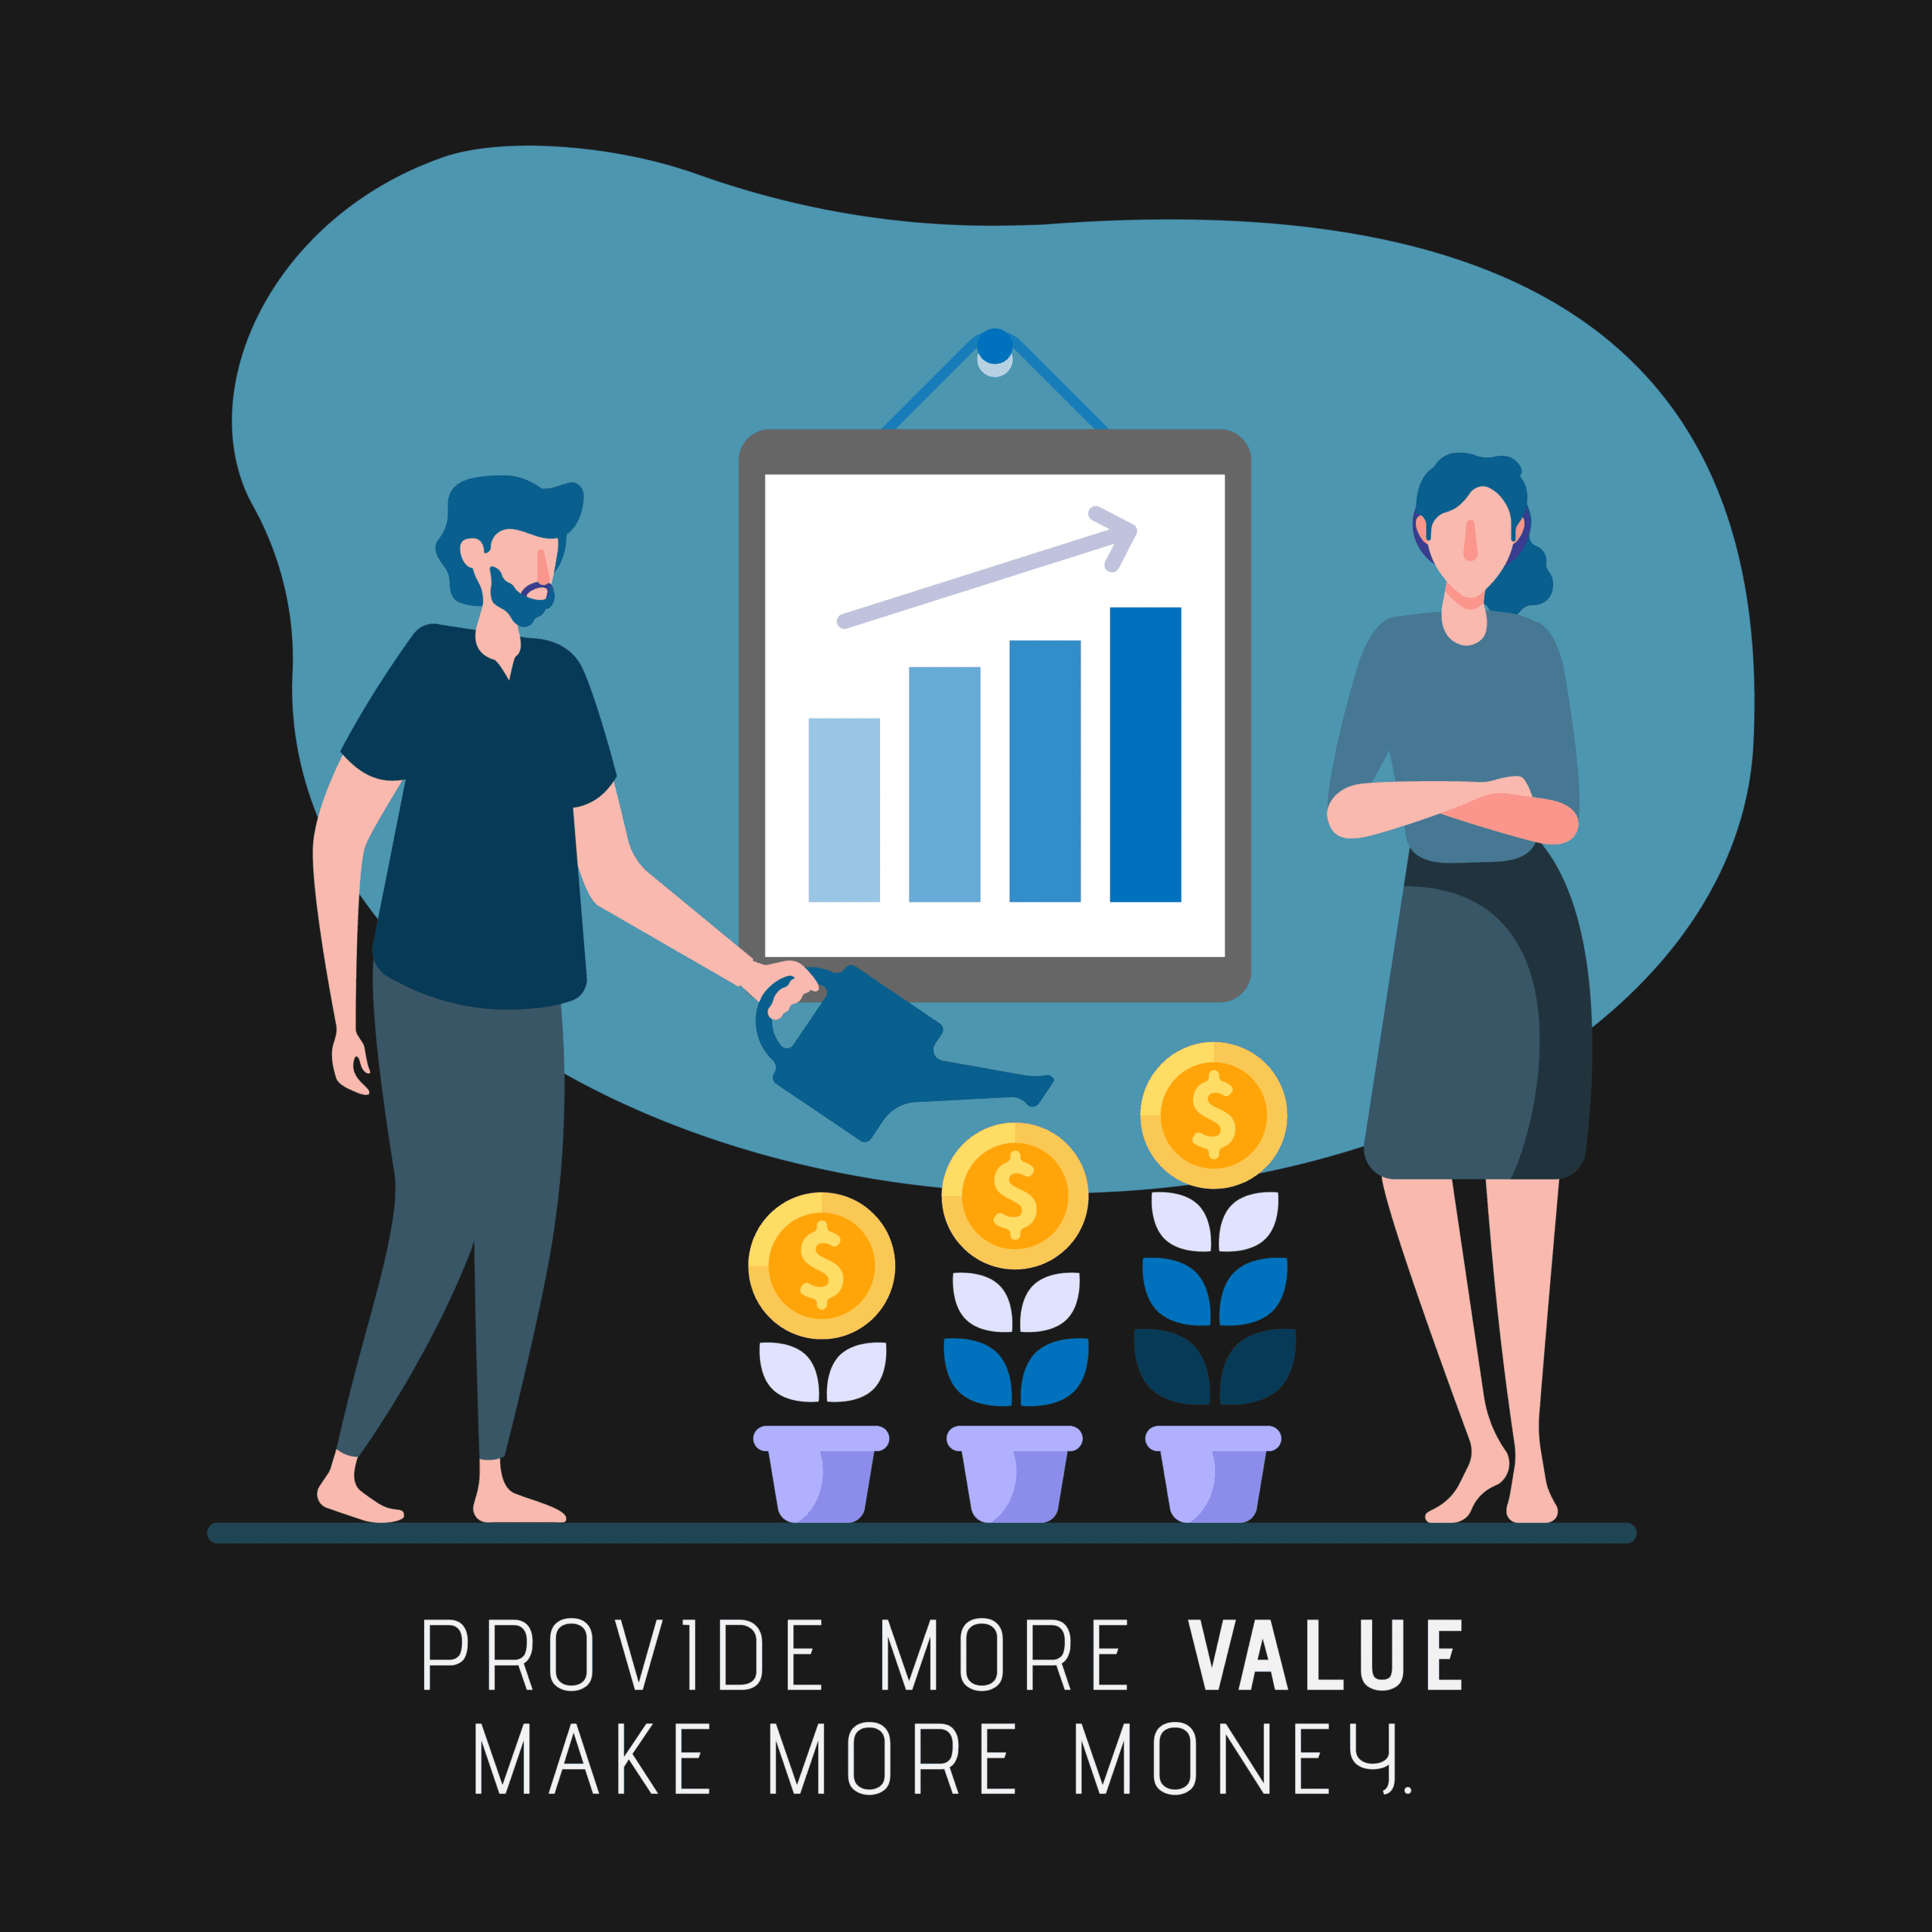 Providing value will make your business grow.